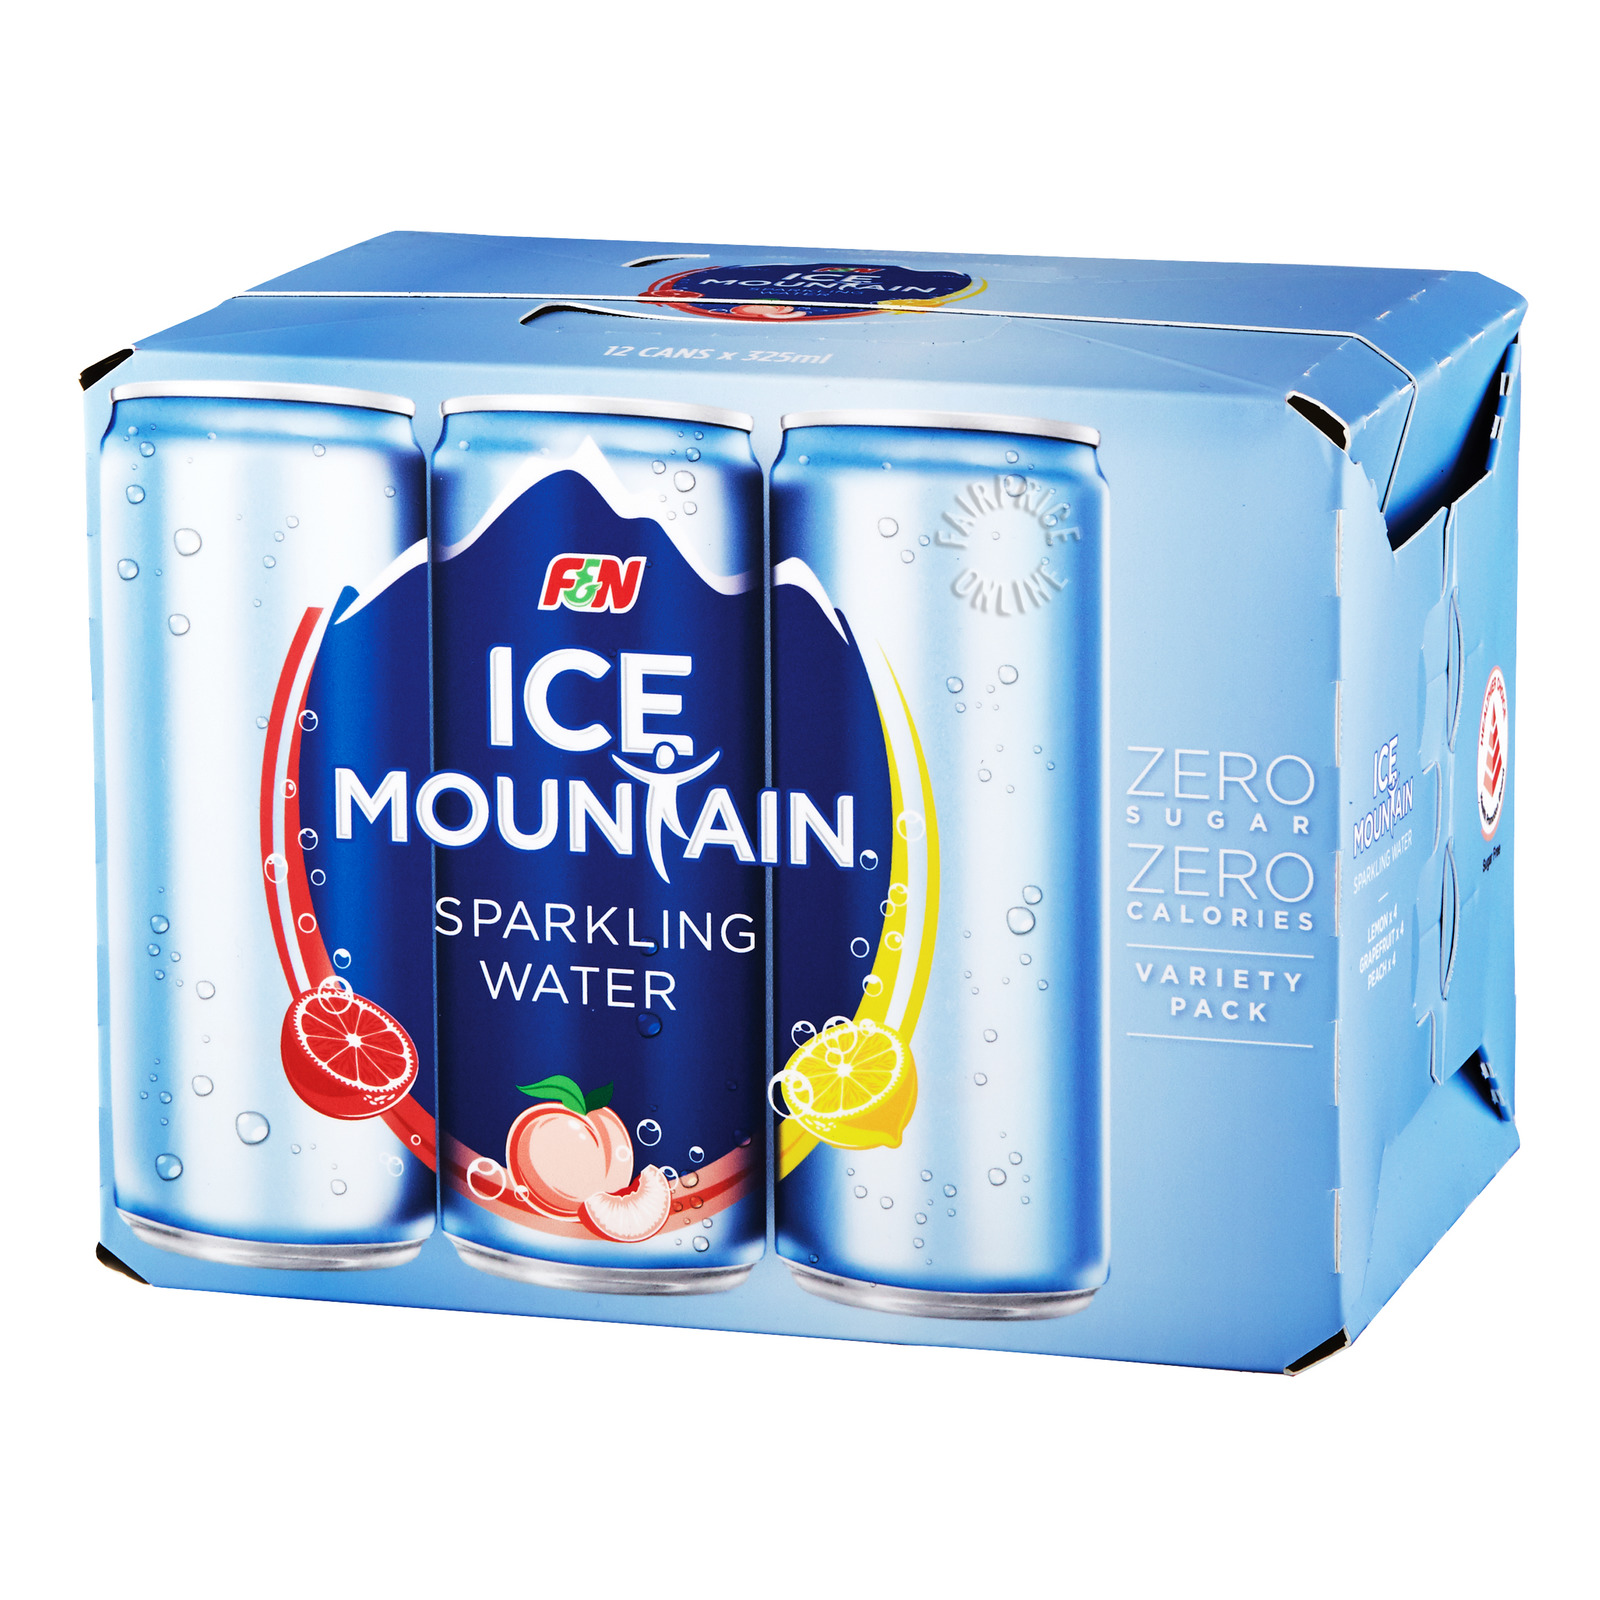 F&N Ice Mountain Sparkling Can Drink - Variety Pack